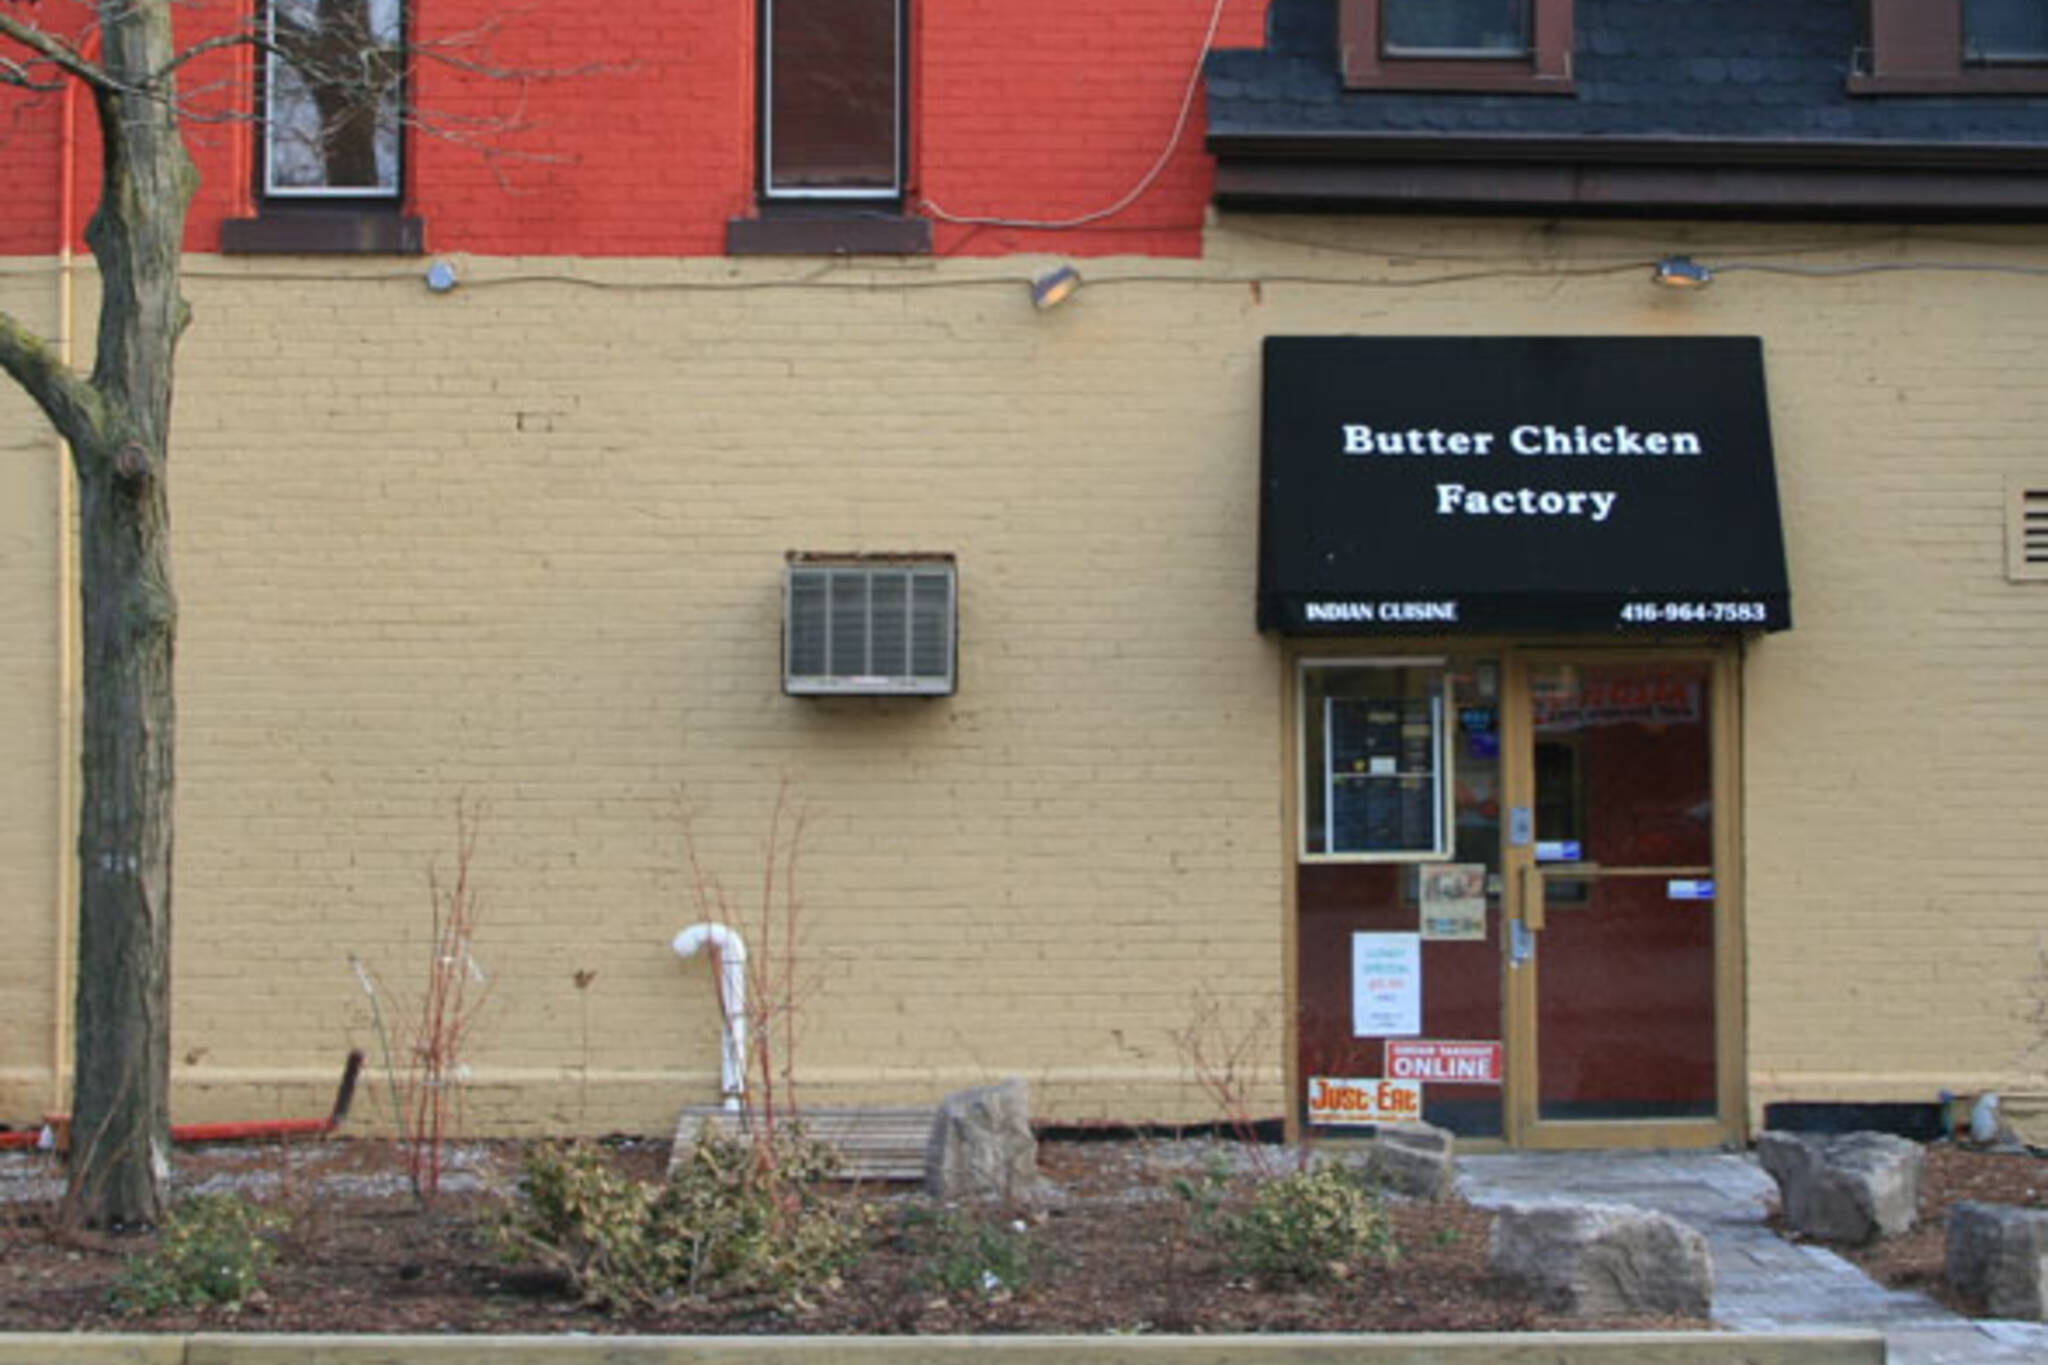 The Butter Chicken Factory